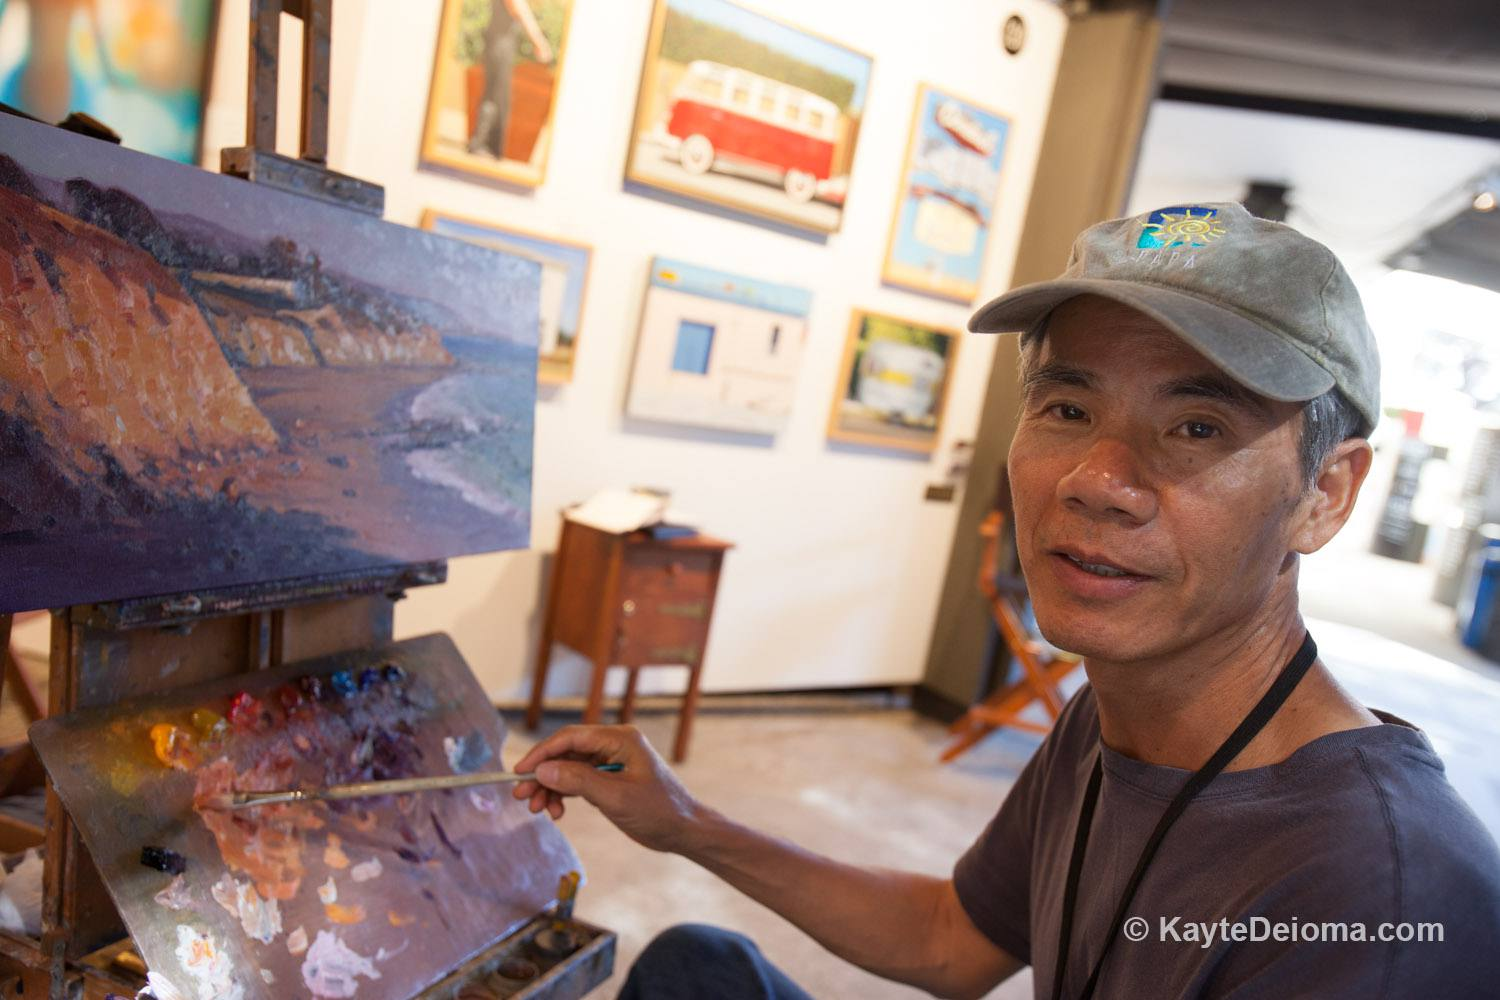 Laguna Art Festivals - A Summer of Art in Orange County